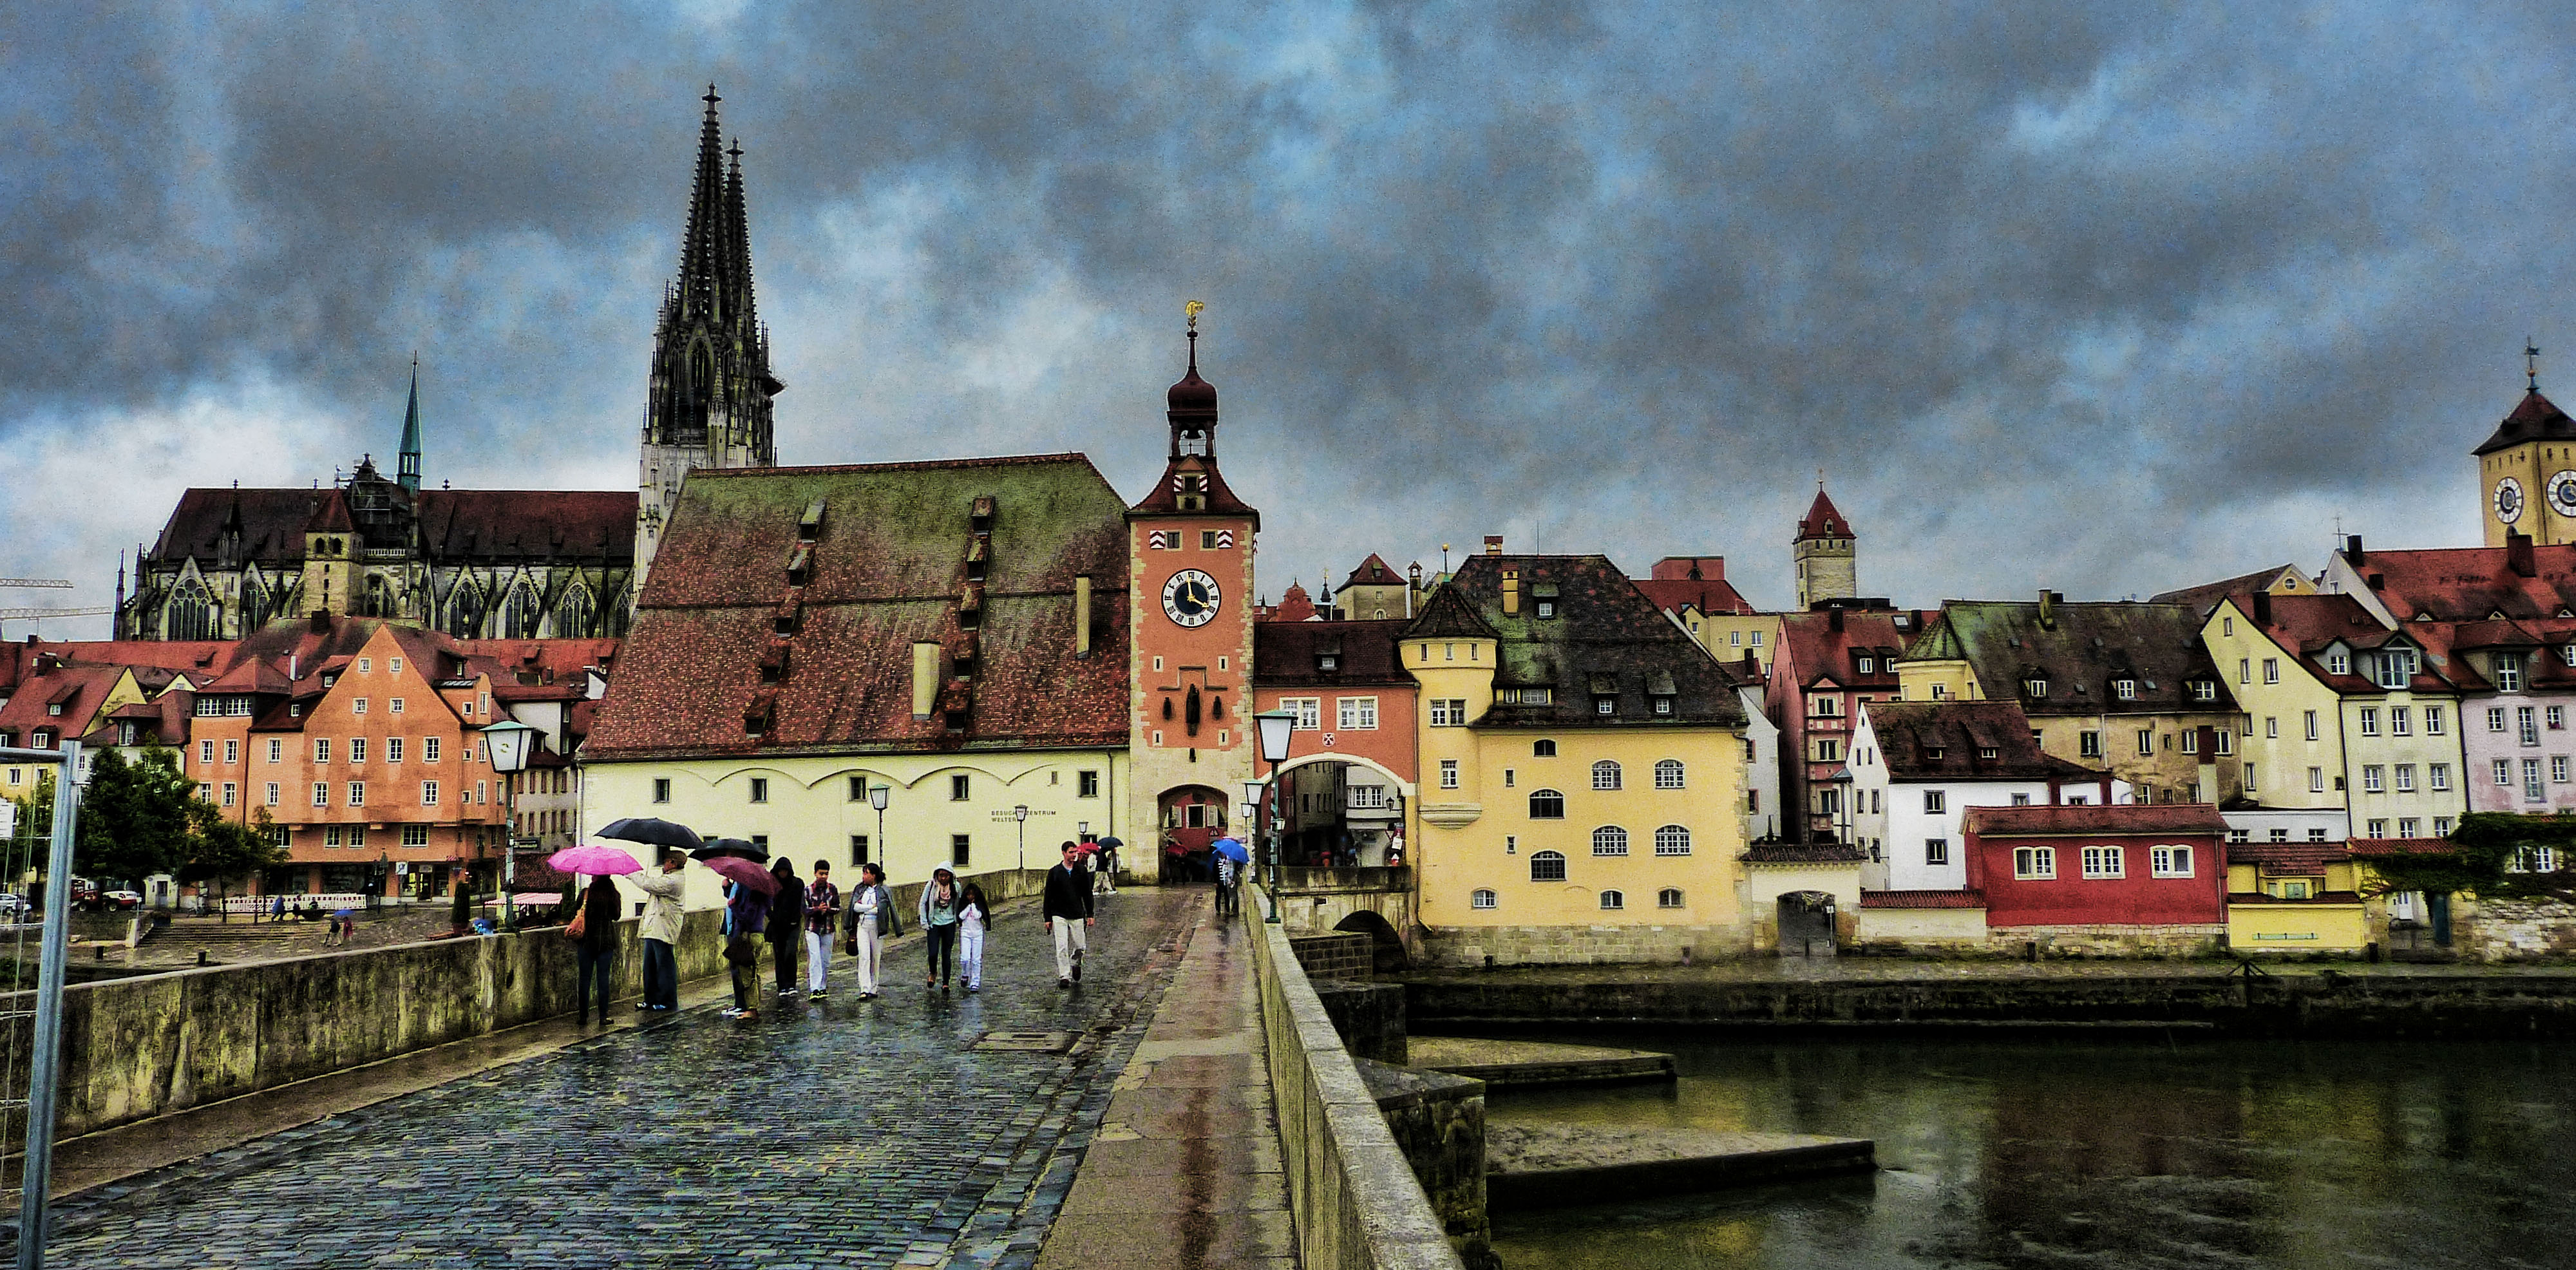 Regensburg, Germany saved EUR 10 million through GPP (cc Flickr/Mariano Mantel)